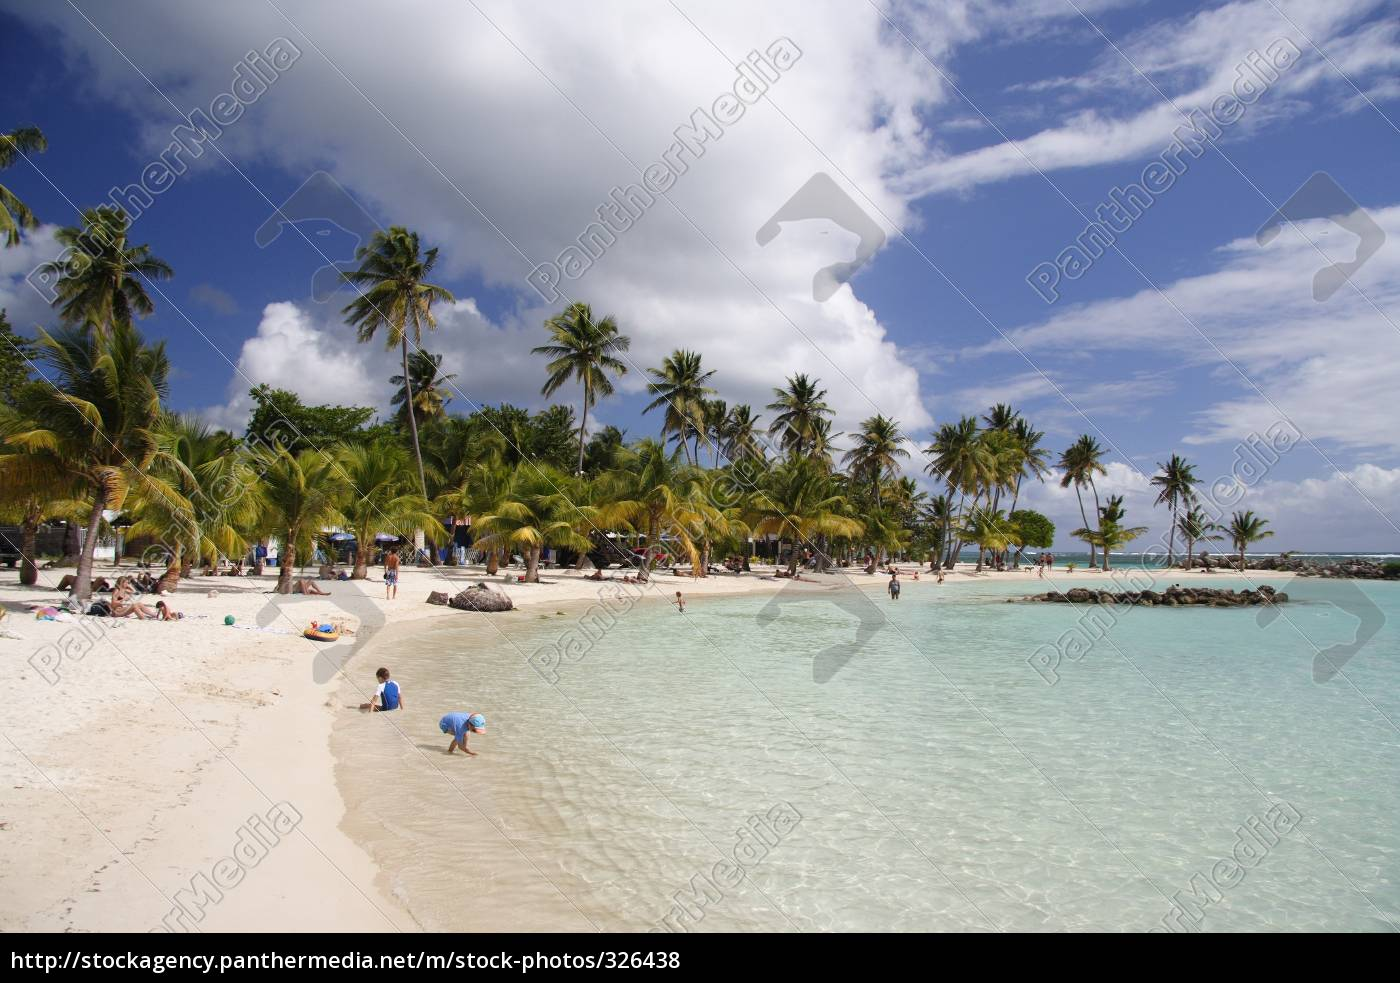 tropical, lagoon - 326438